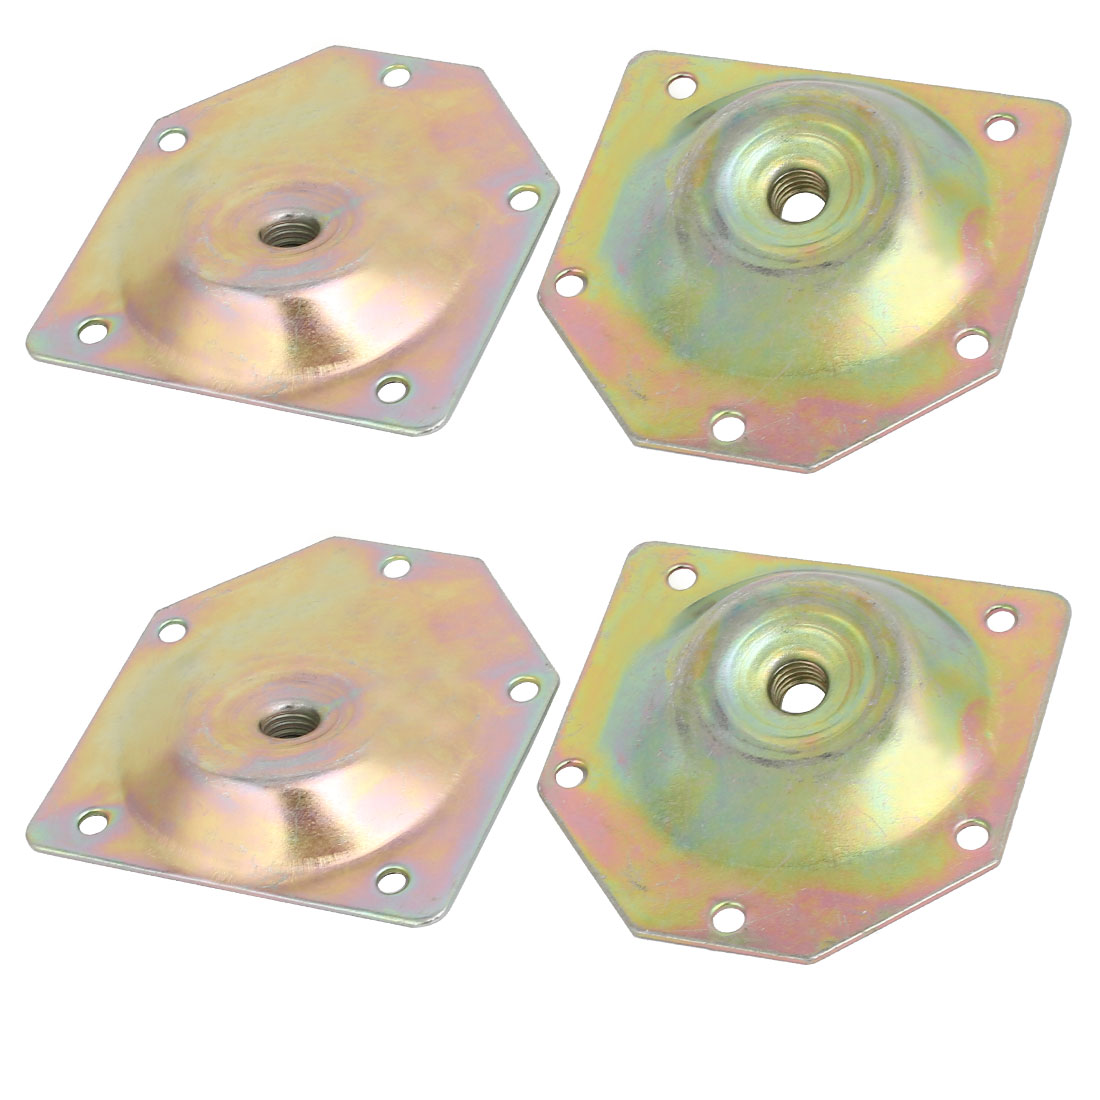 70mmx67mmx1.2mm Zinc Plated Table Leg Mounting Plates Bronze Tone 4pcs